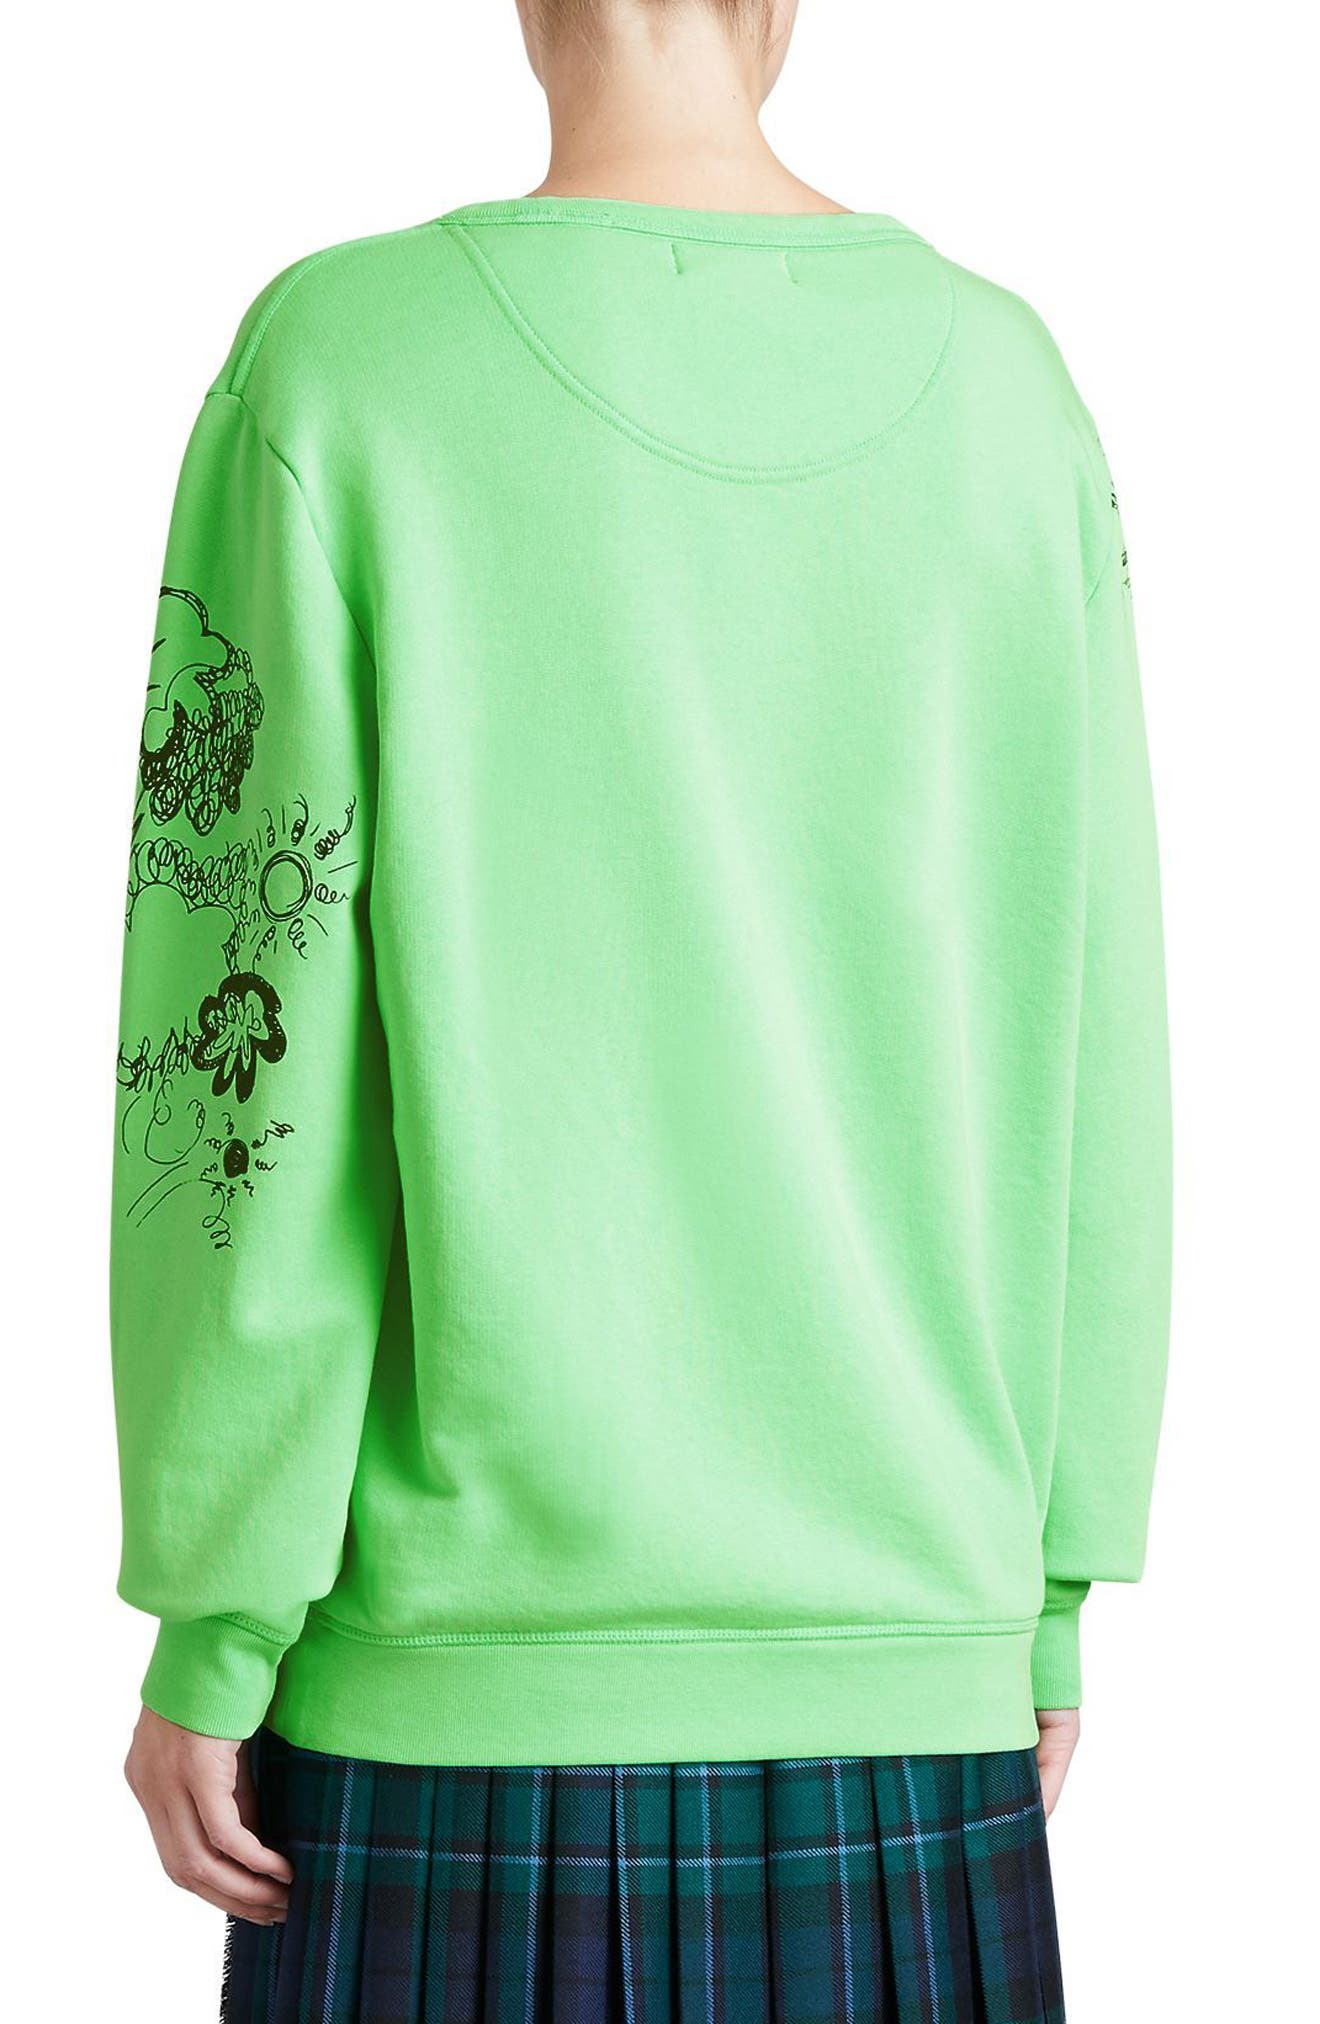 Madon Print Sweatshirt,                             Alternate thumbnail 3, color,                             Bright Apple Green